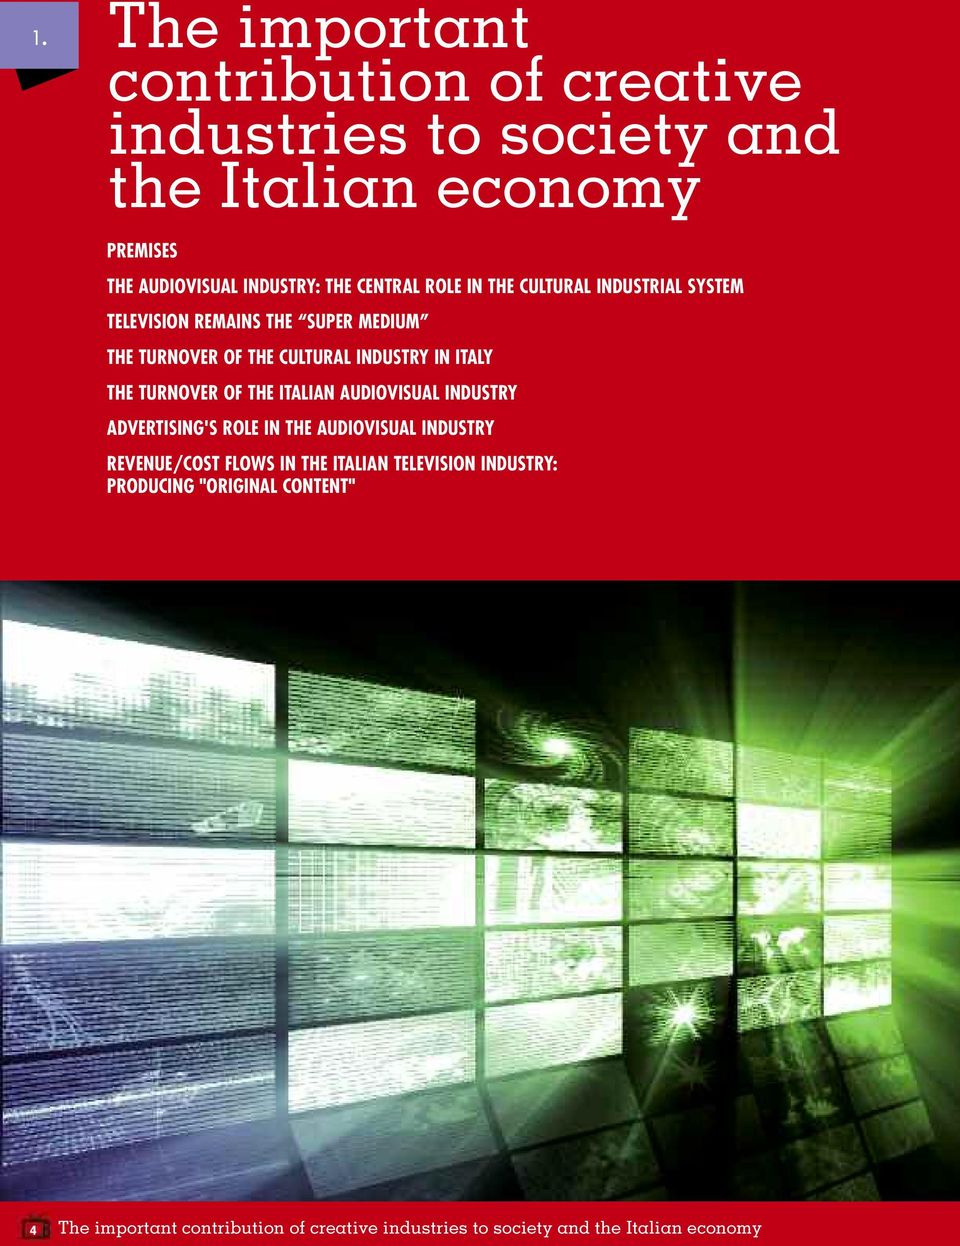 THE TURNOVER OF THE ITALIAN AUDIOVISUAL INDUSTRY ADVERTISING'S ROLE IN THE AUDIOVISUAL INDUSTRY REVENUE/COST FLOWS IN THE ITALIAN